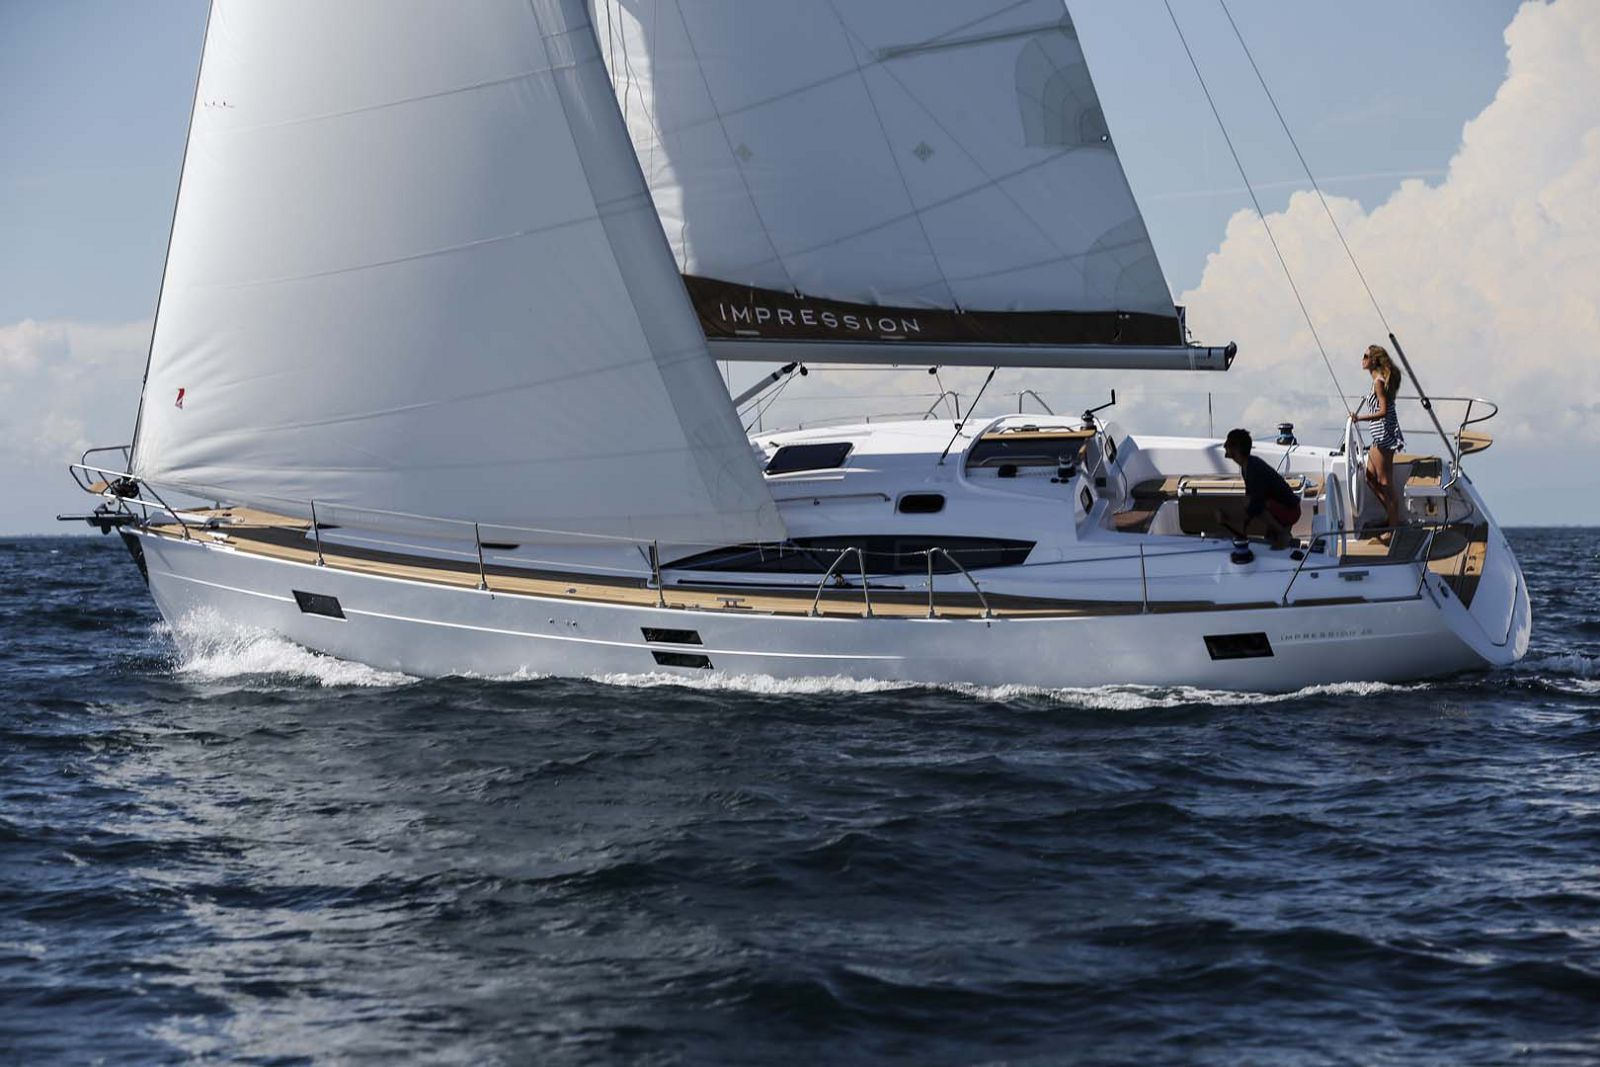 Elan-Yachts-Impression-45-Sailboat-Turning